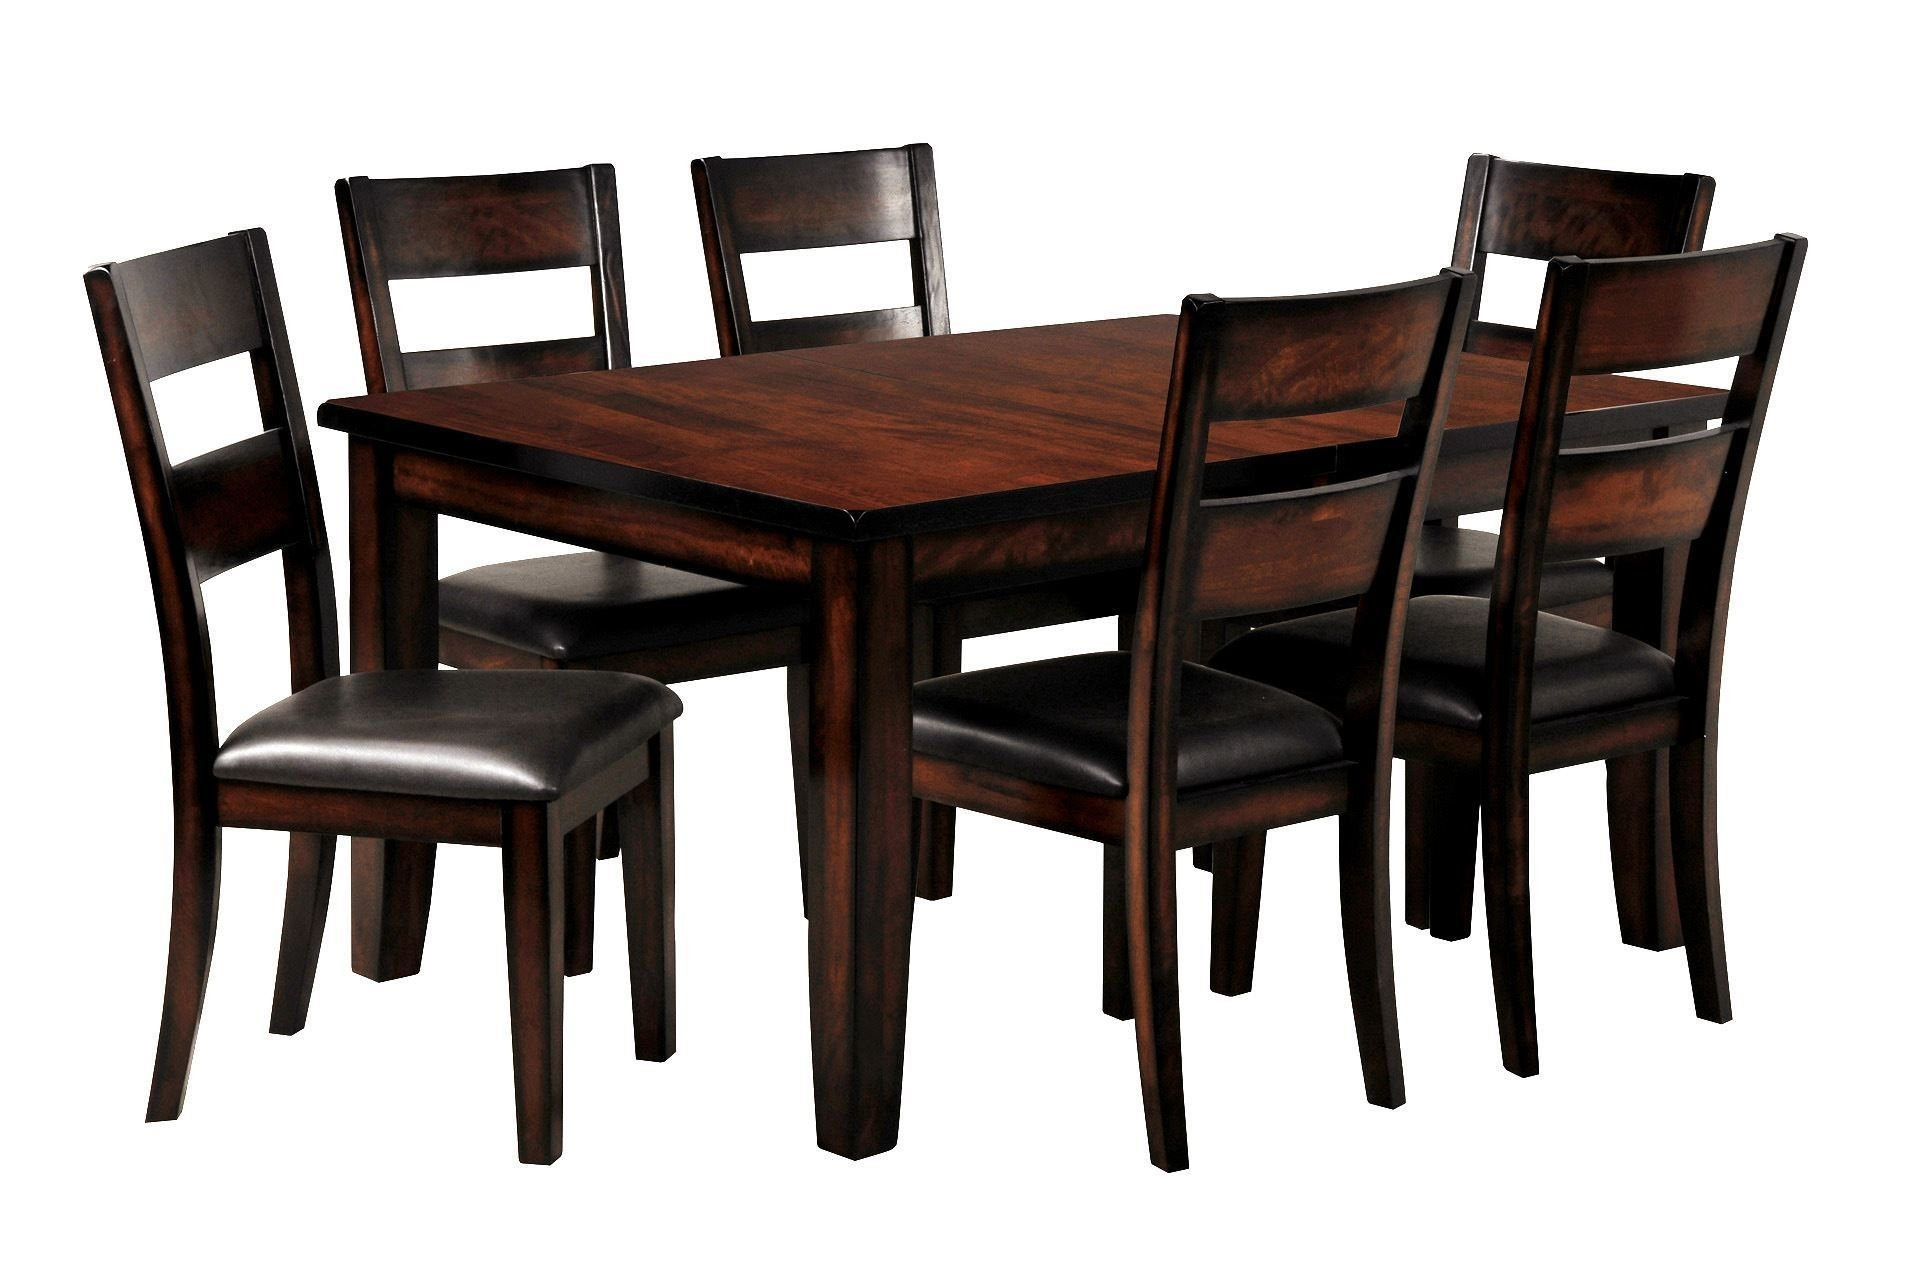 Rocco 7 Piece Extension Dining Set | Jodys Wish List (Gift Ideas Regarding Most Current Rocco 7 Piece Extension Dining Sets (Image 11 of 20)